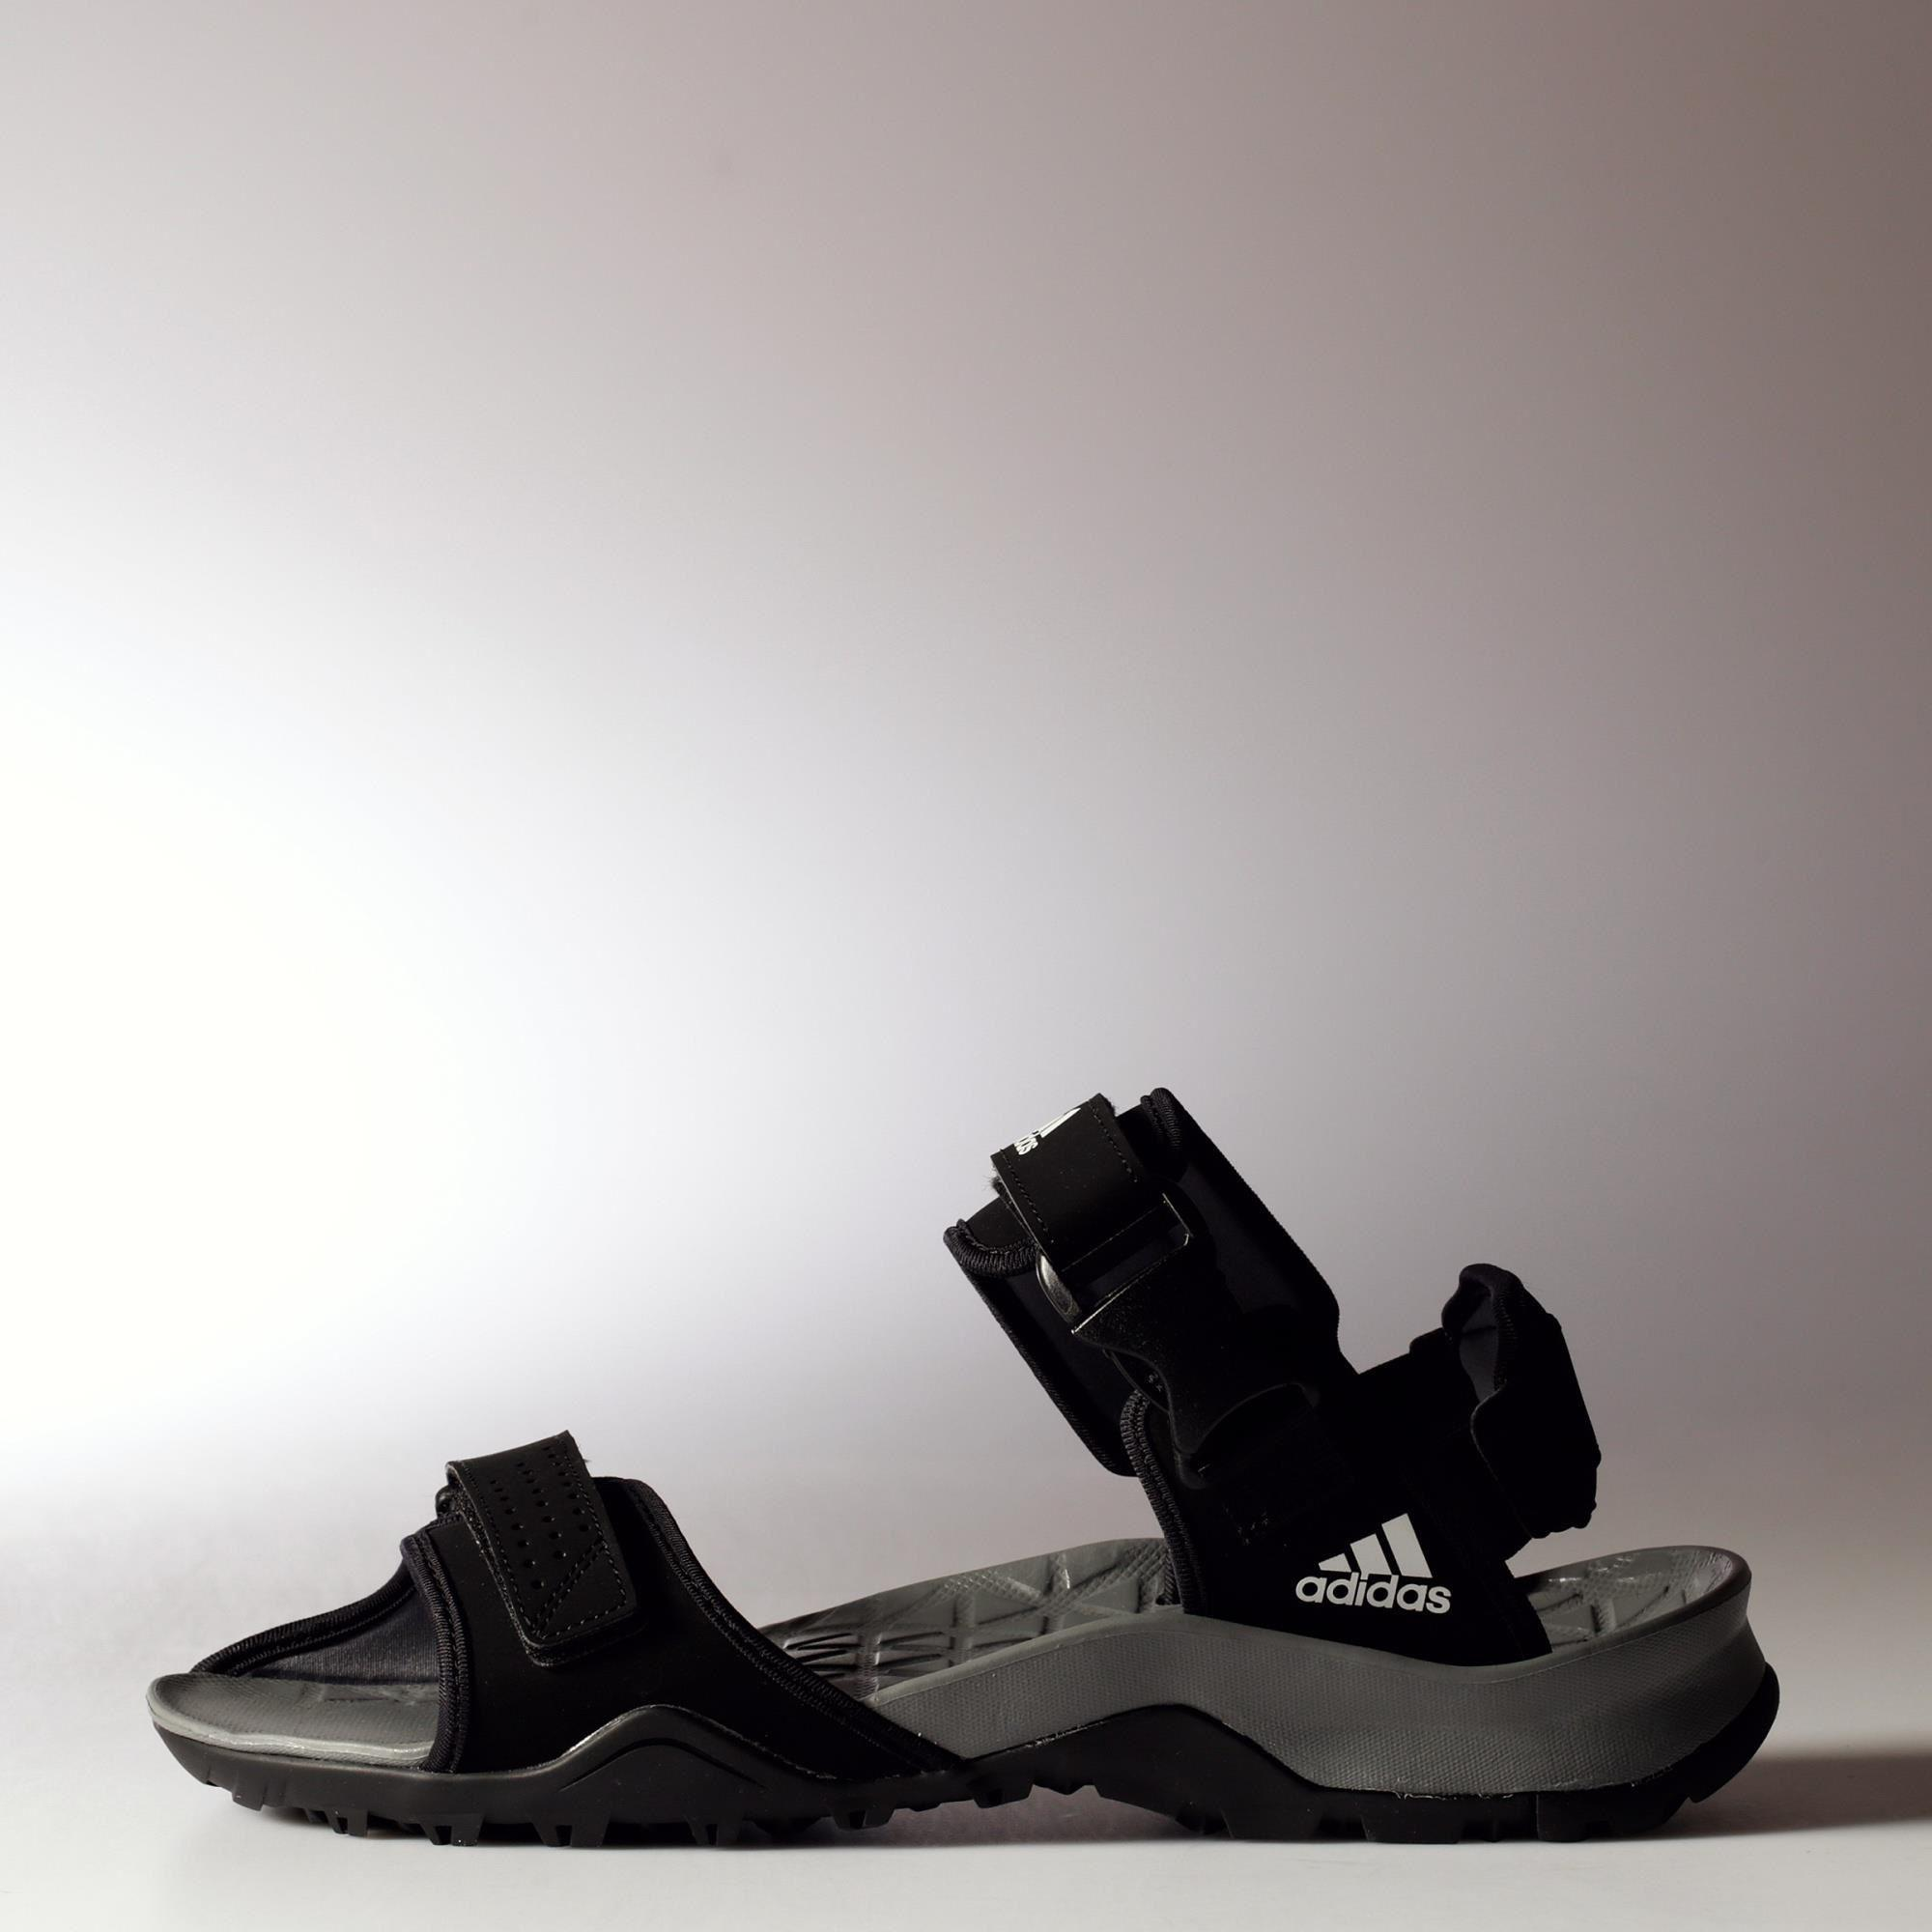 702a778adb13 Adidas Mens Cyprex Ultra Sandal II - Core Black Vista Grey - Tennisnuts.com